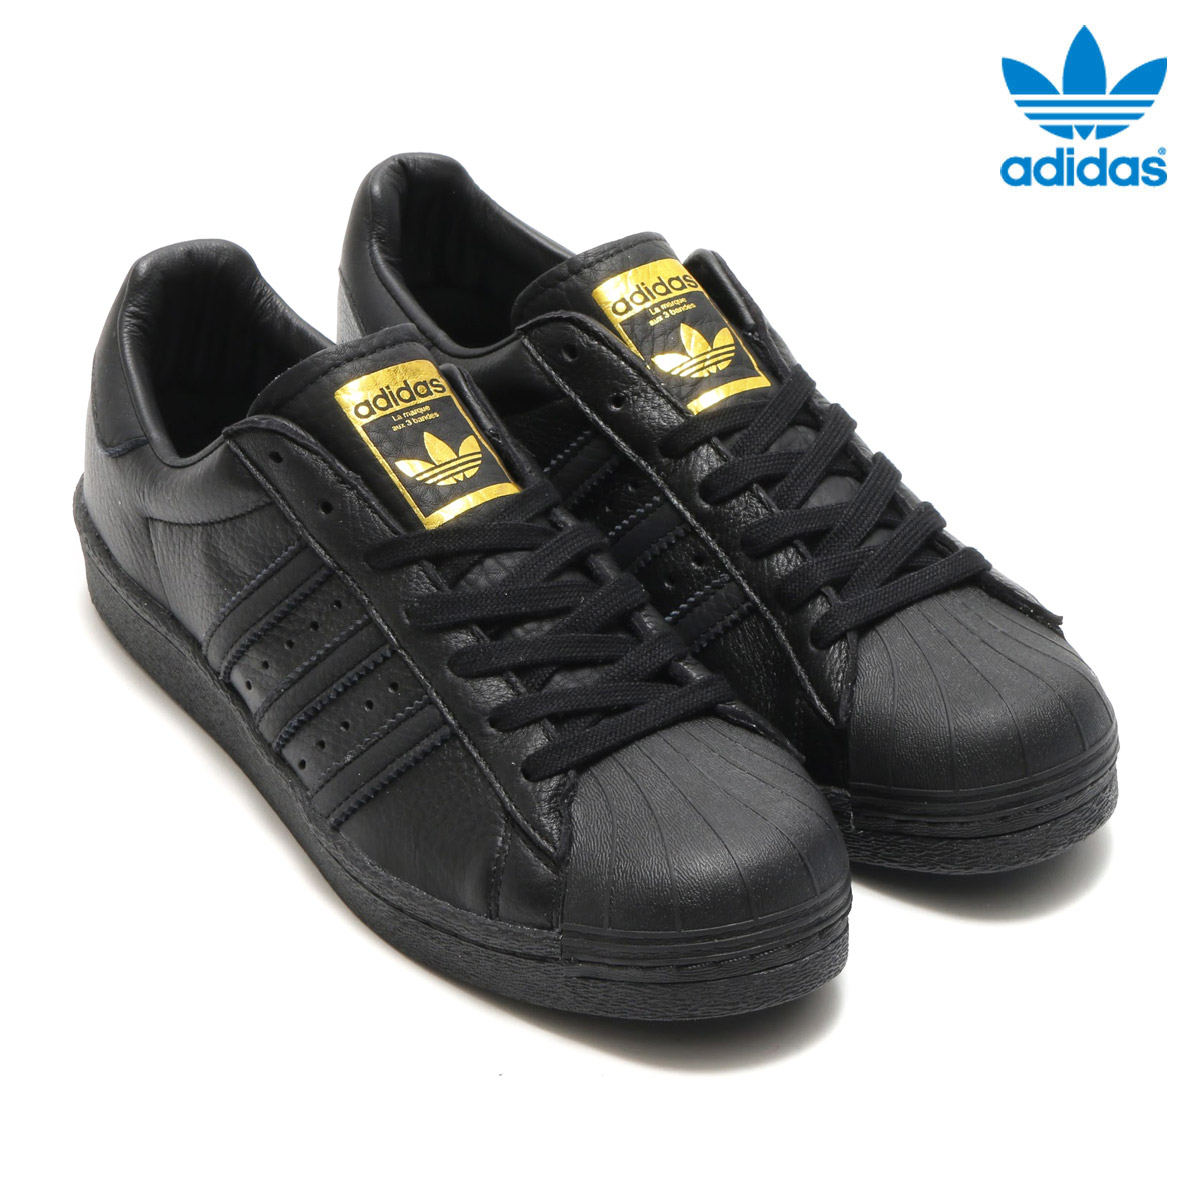 adidas Superstar Shoes Black adidas UK